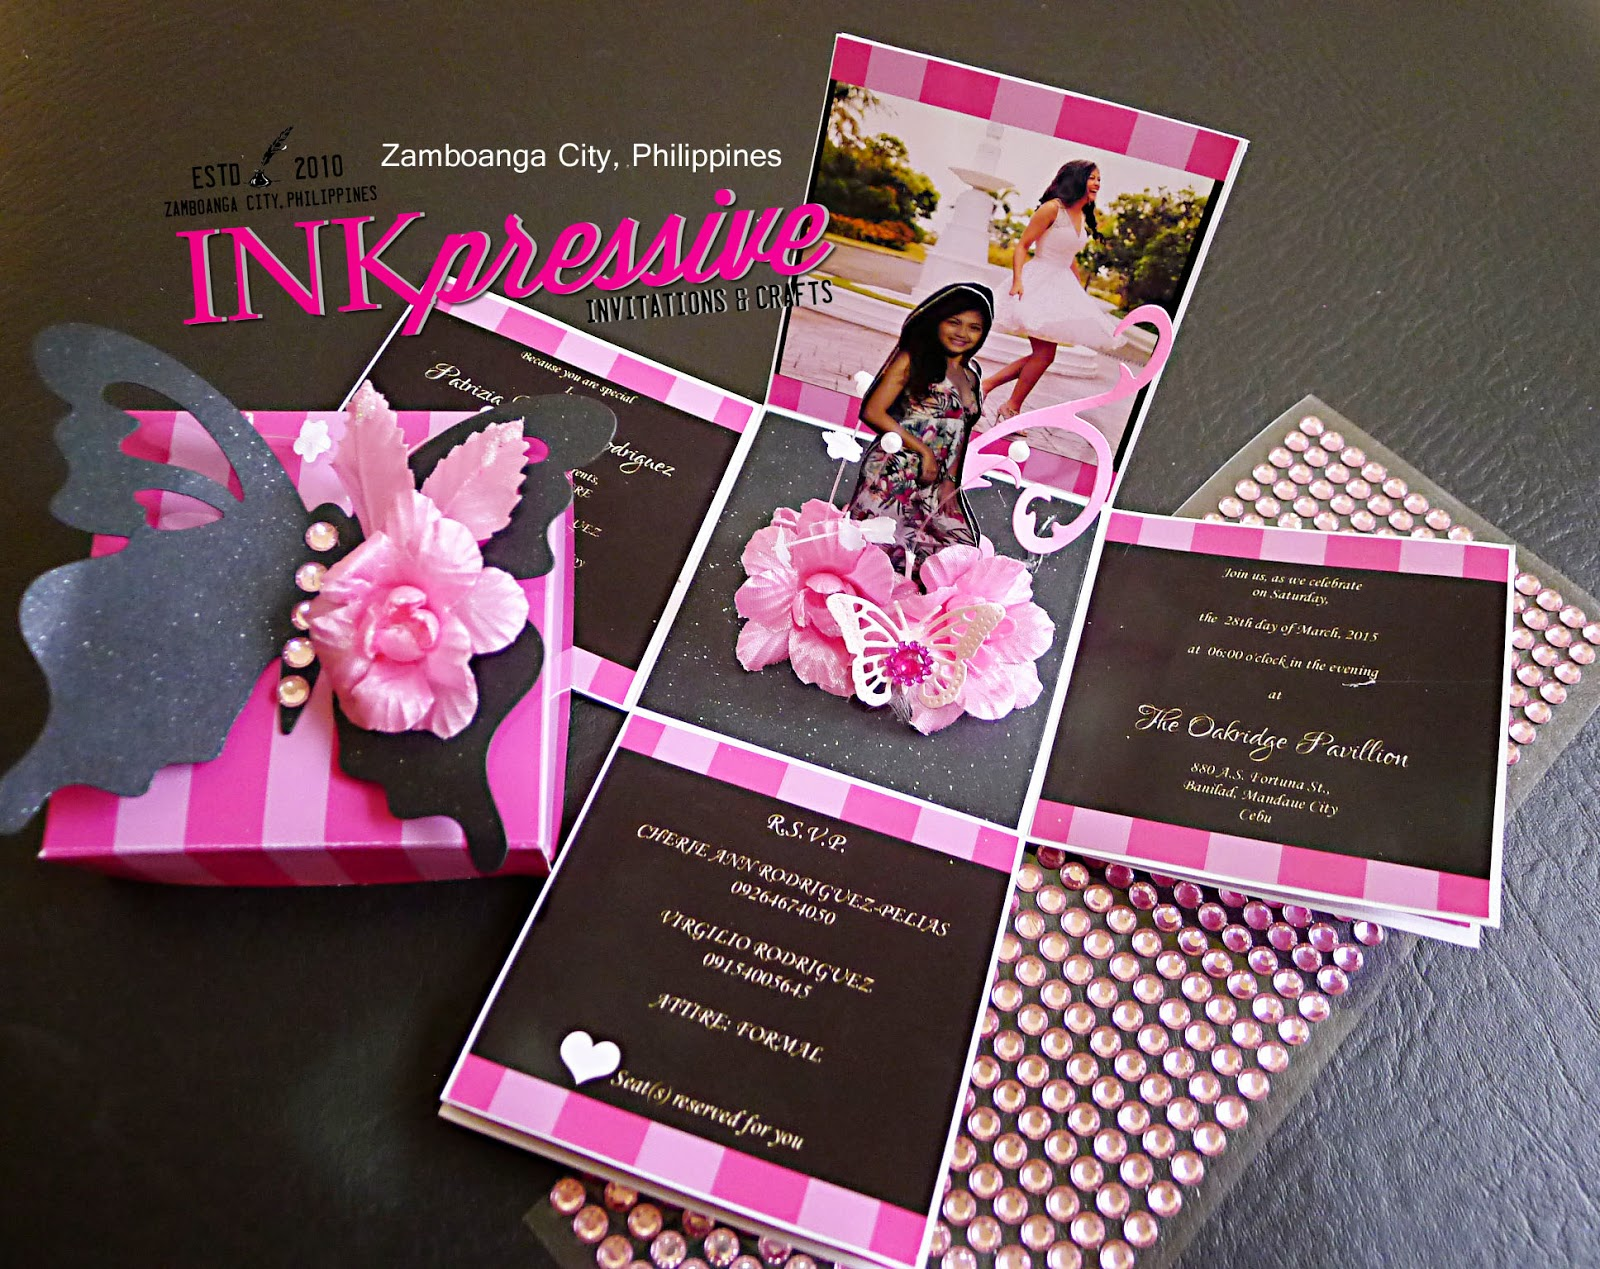 Pink striped and black exploding box invitation debut victoria inspired by the victoria secret pink stripes this double exploding box debut invitation is both charming and fun the cover is topped with an embellished stopboris Gallery